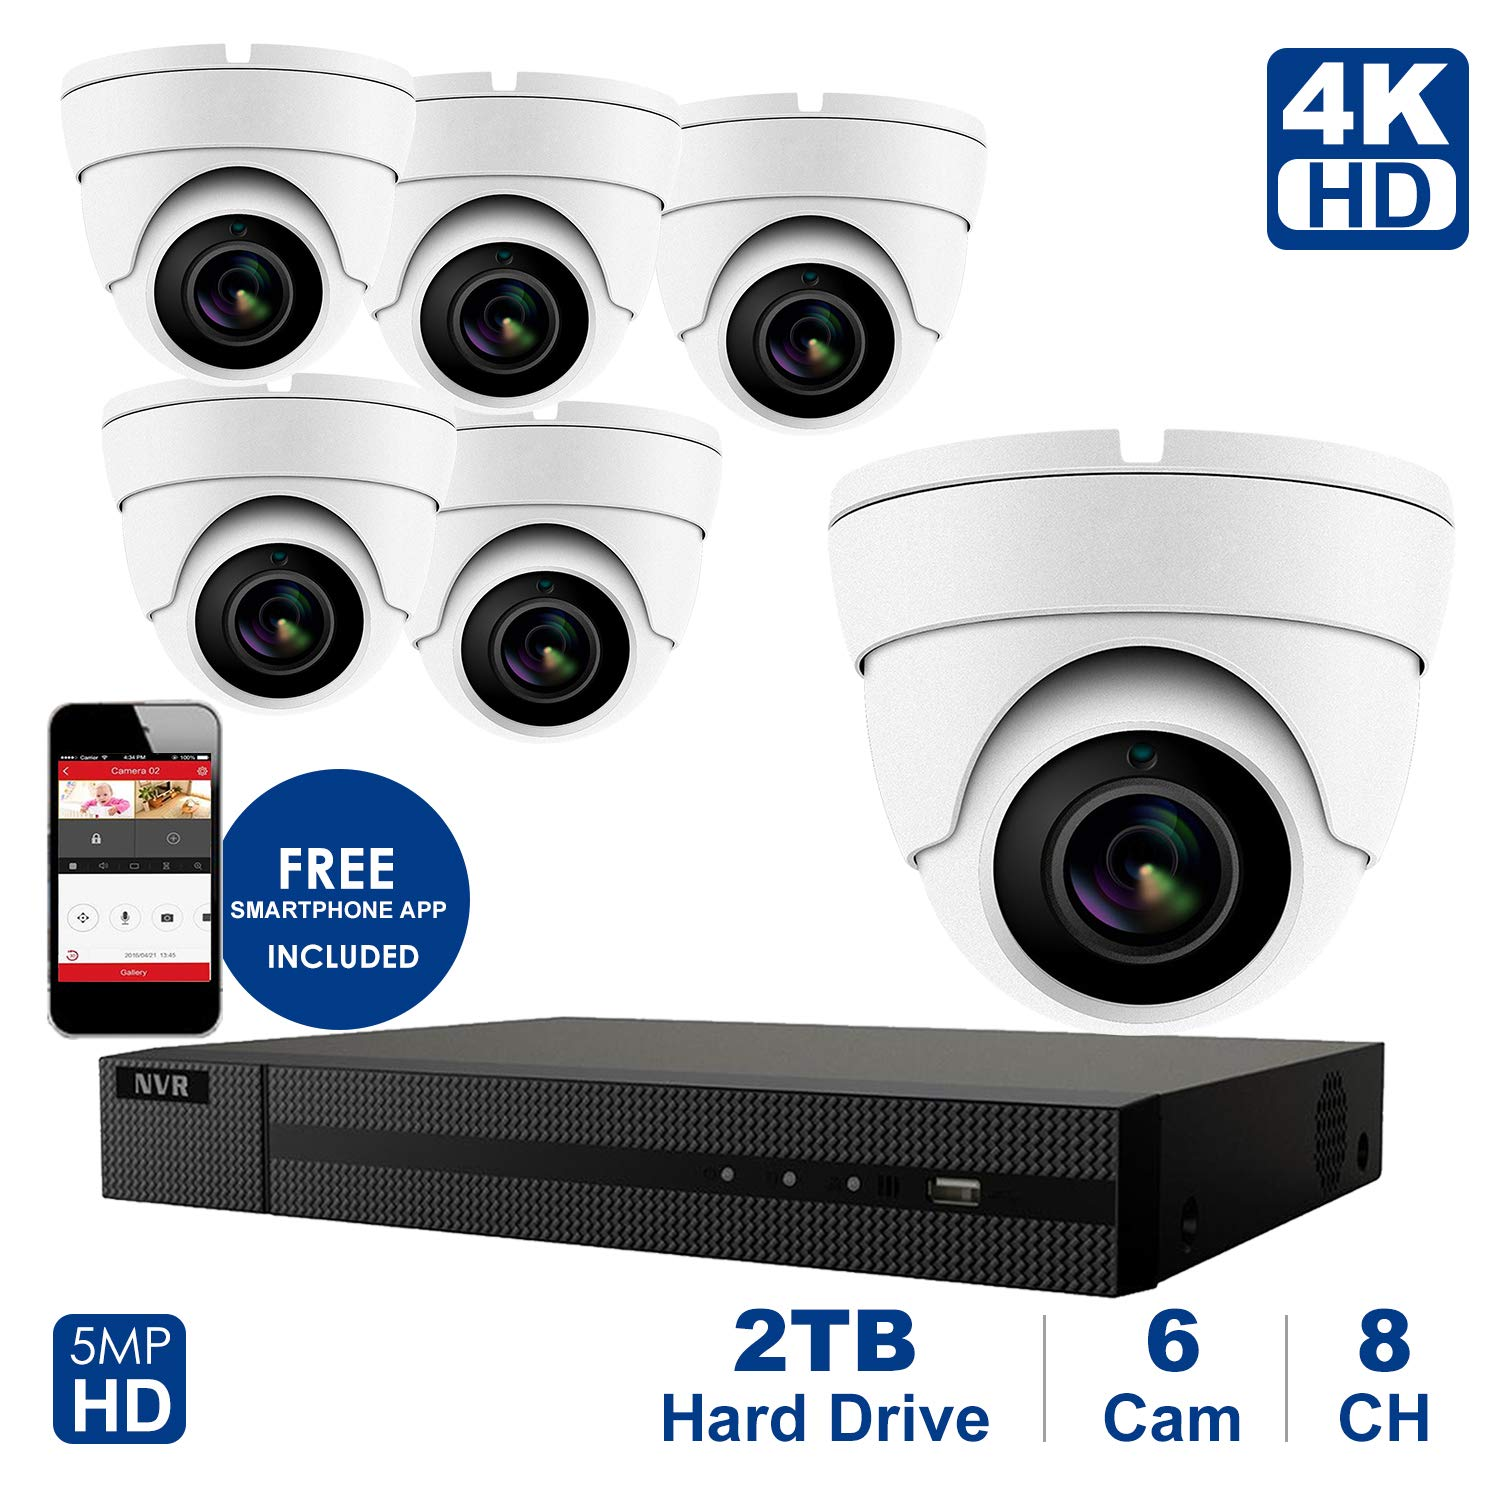 4K 8 CH NVR with Home Security System with 5MP IP Poe Dome 6pcs White Security Dome Camera,Plug and Play,Remote Home Monitoring System,2TB Storage (8 Channel System, 6pcs White Dome Cameras) by Anpvees